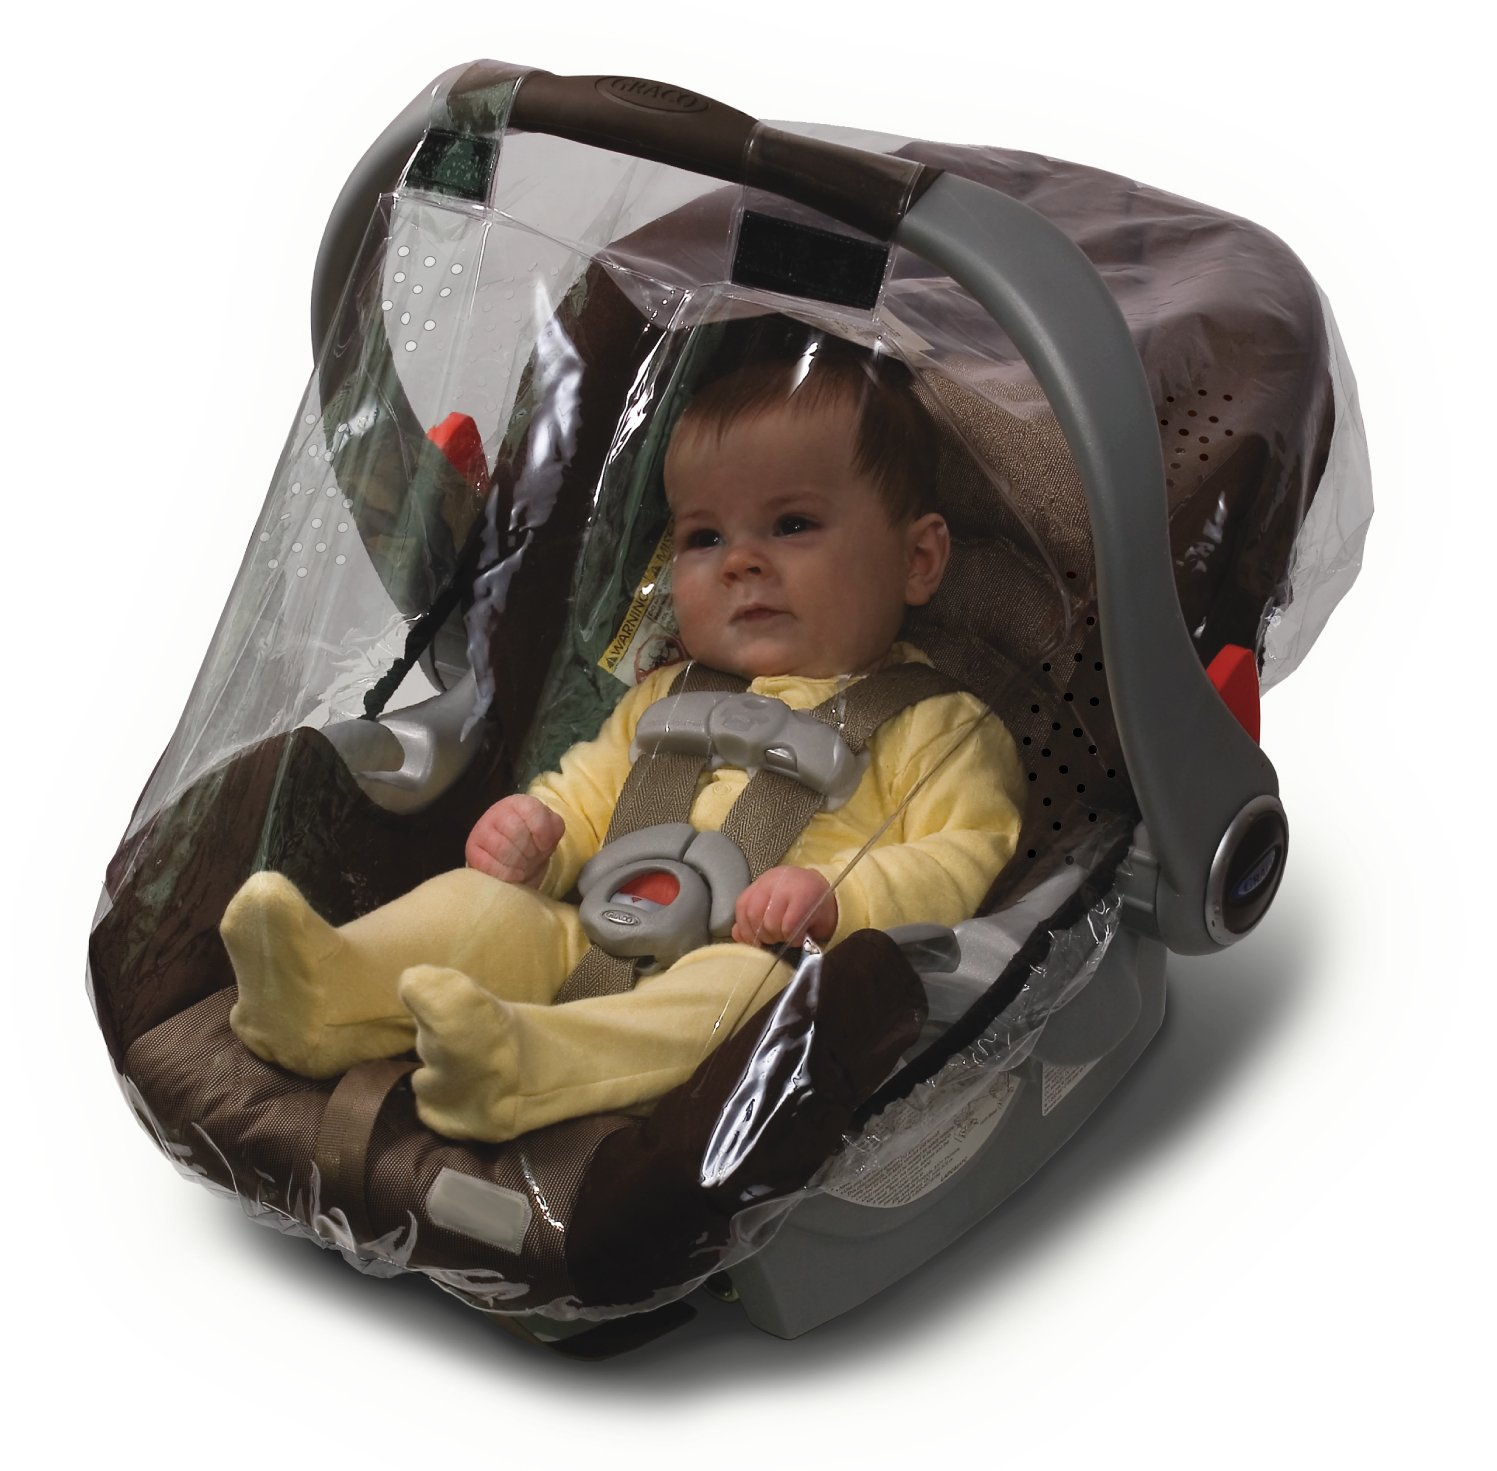 Jolly Jumper Weathershield for Infant Car Seat - Protects Baby From Rain, Sleet, Snow & Wind - Phthalate Free 298